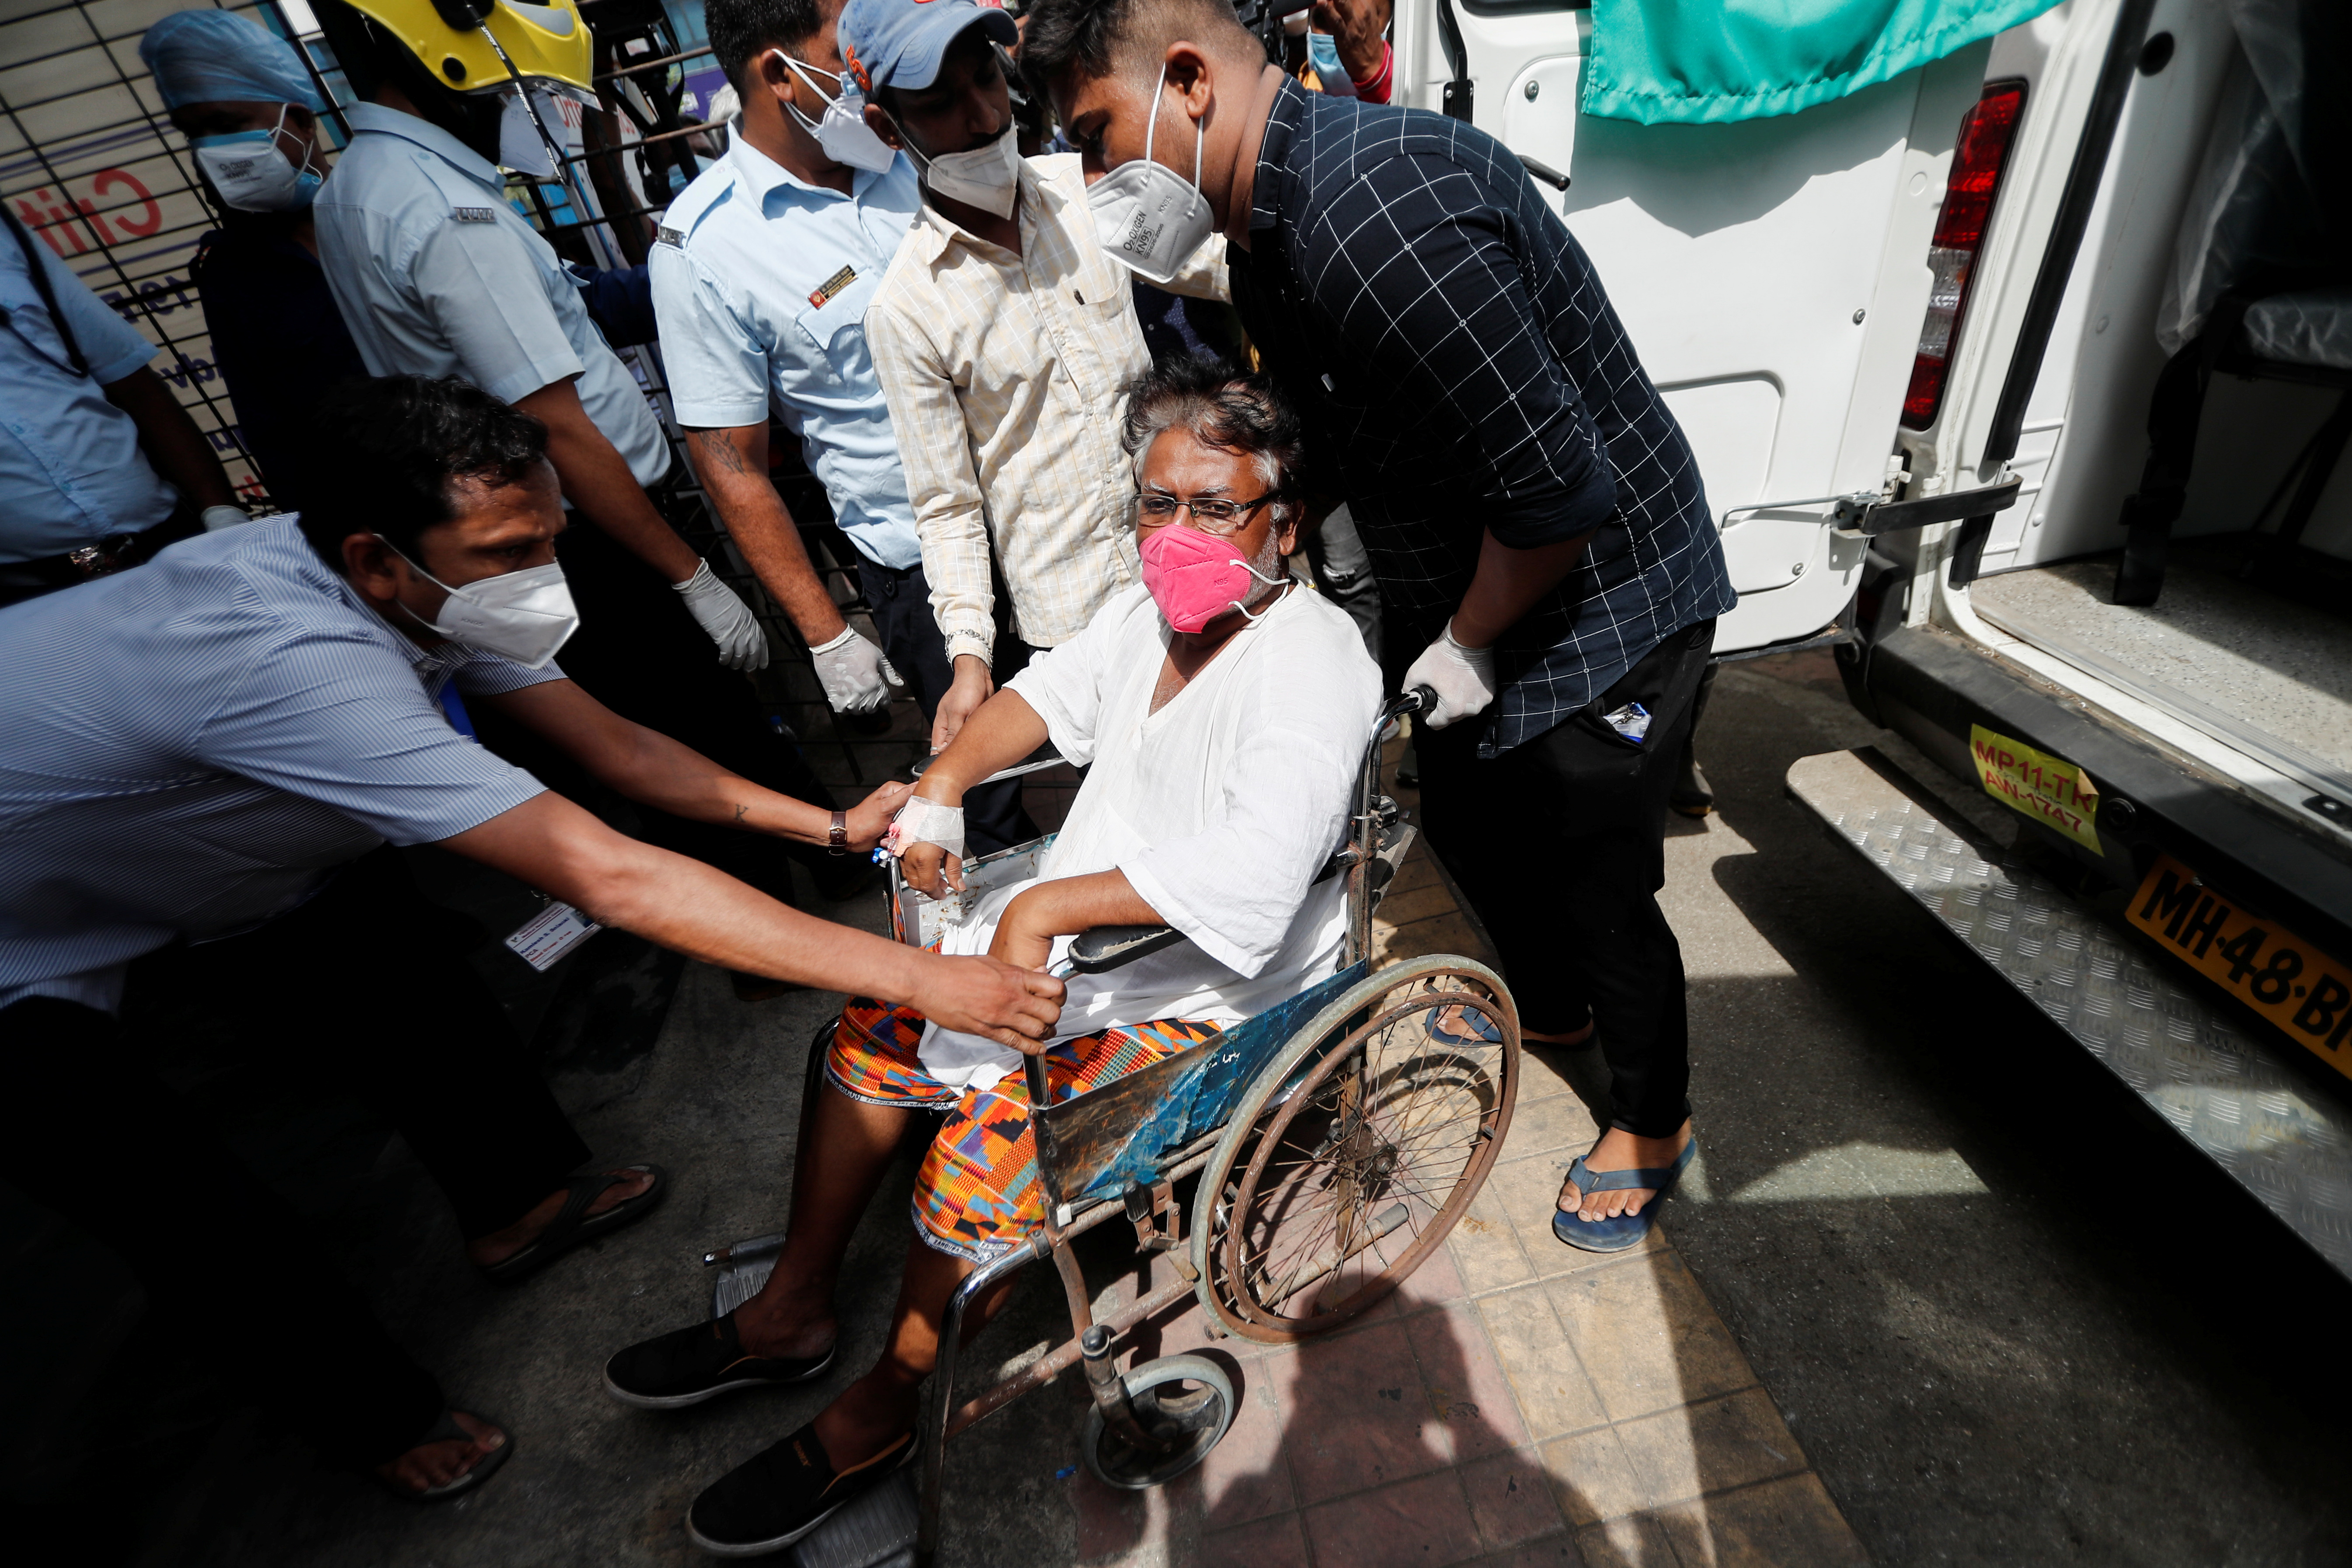 A patient suffering from the coronavirus disease (COVID-19) is evacuated from a hospital after it caught fire in Virar, on the outskirts of Mumbai, India, April 23, 2021. REUTERS/Francis Mascarenhas